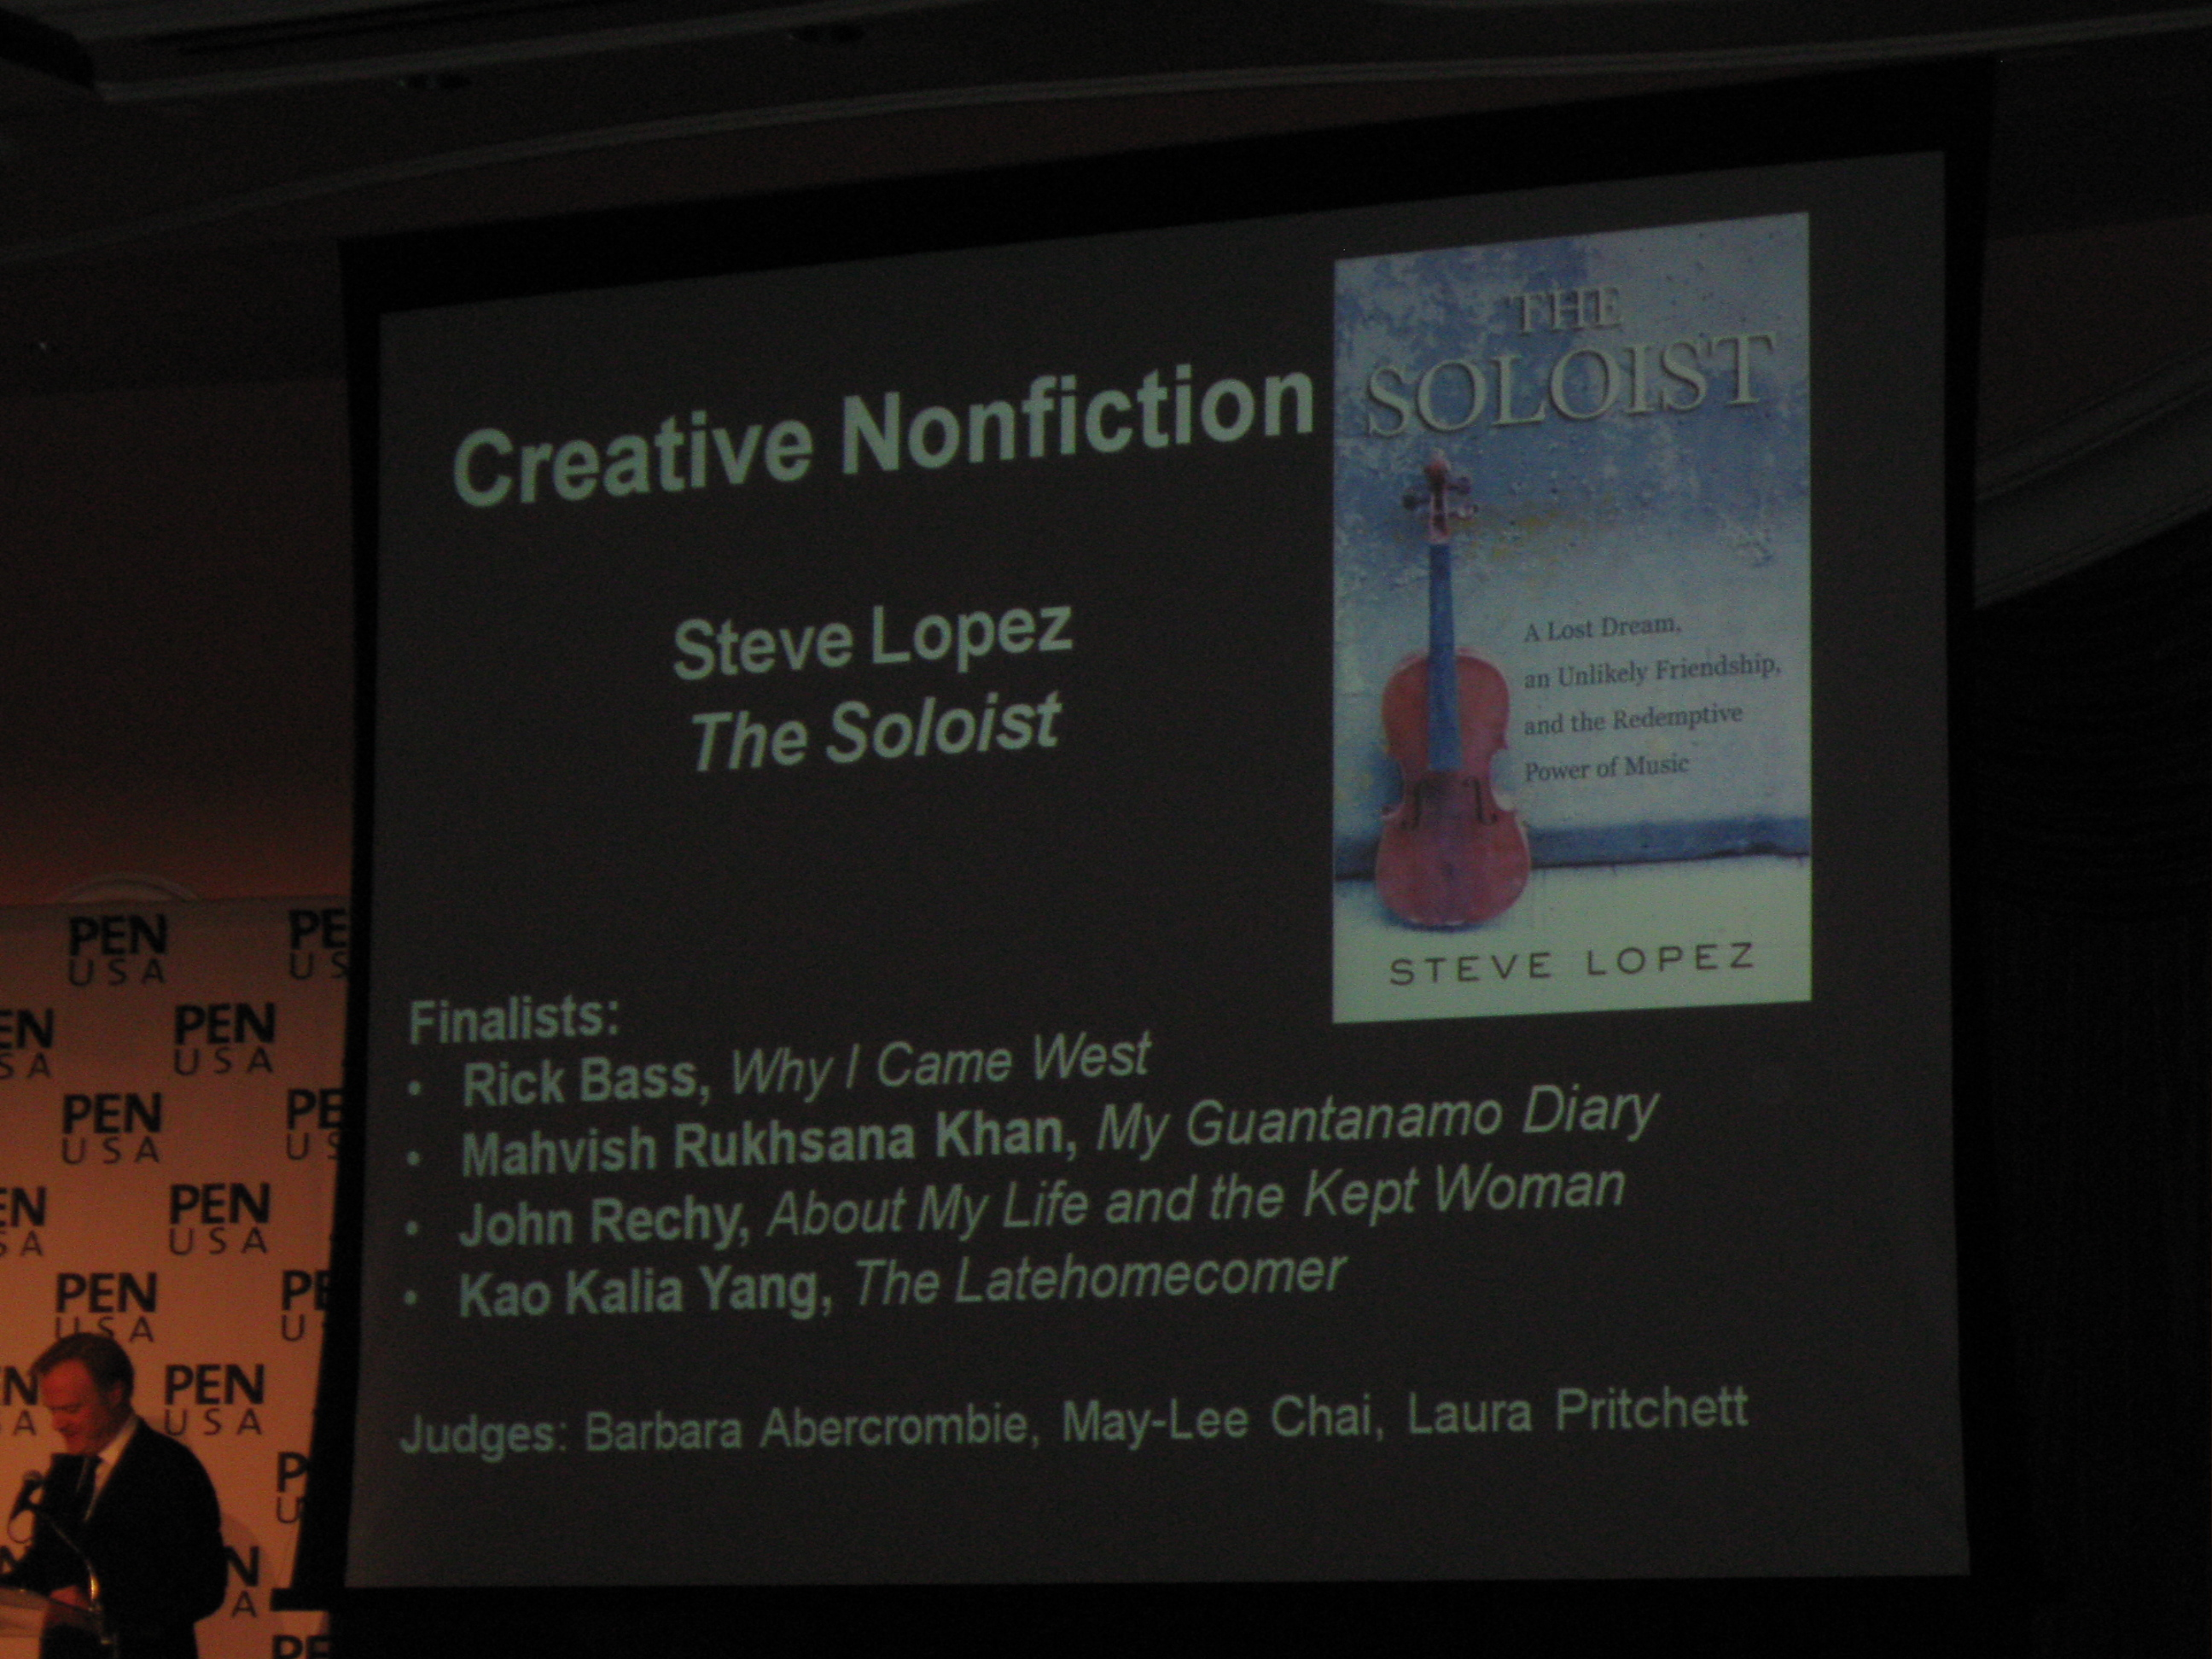 a reflection on the true definition of friendship in the soloist a novel by steve lopez 196 career of jennifer lopez essay miss representation reflection paperthe miss a reflection on the true definition of friendship in the soloist.